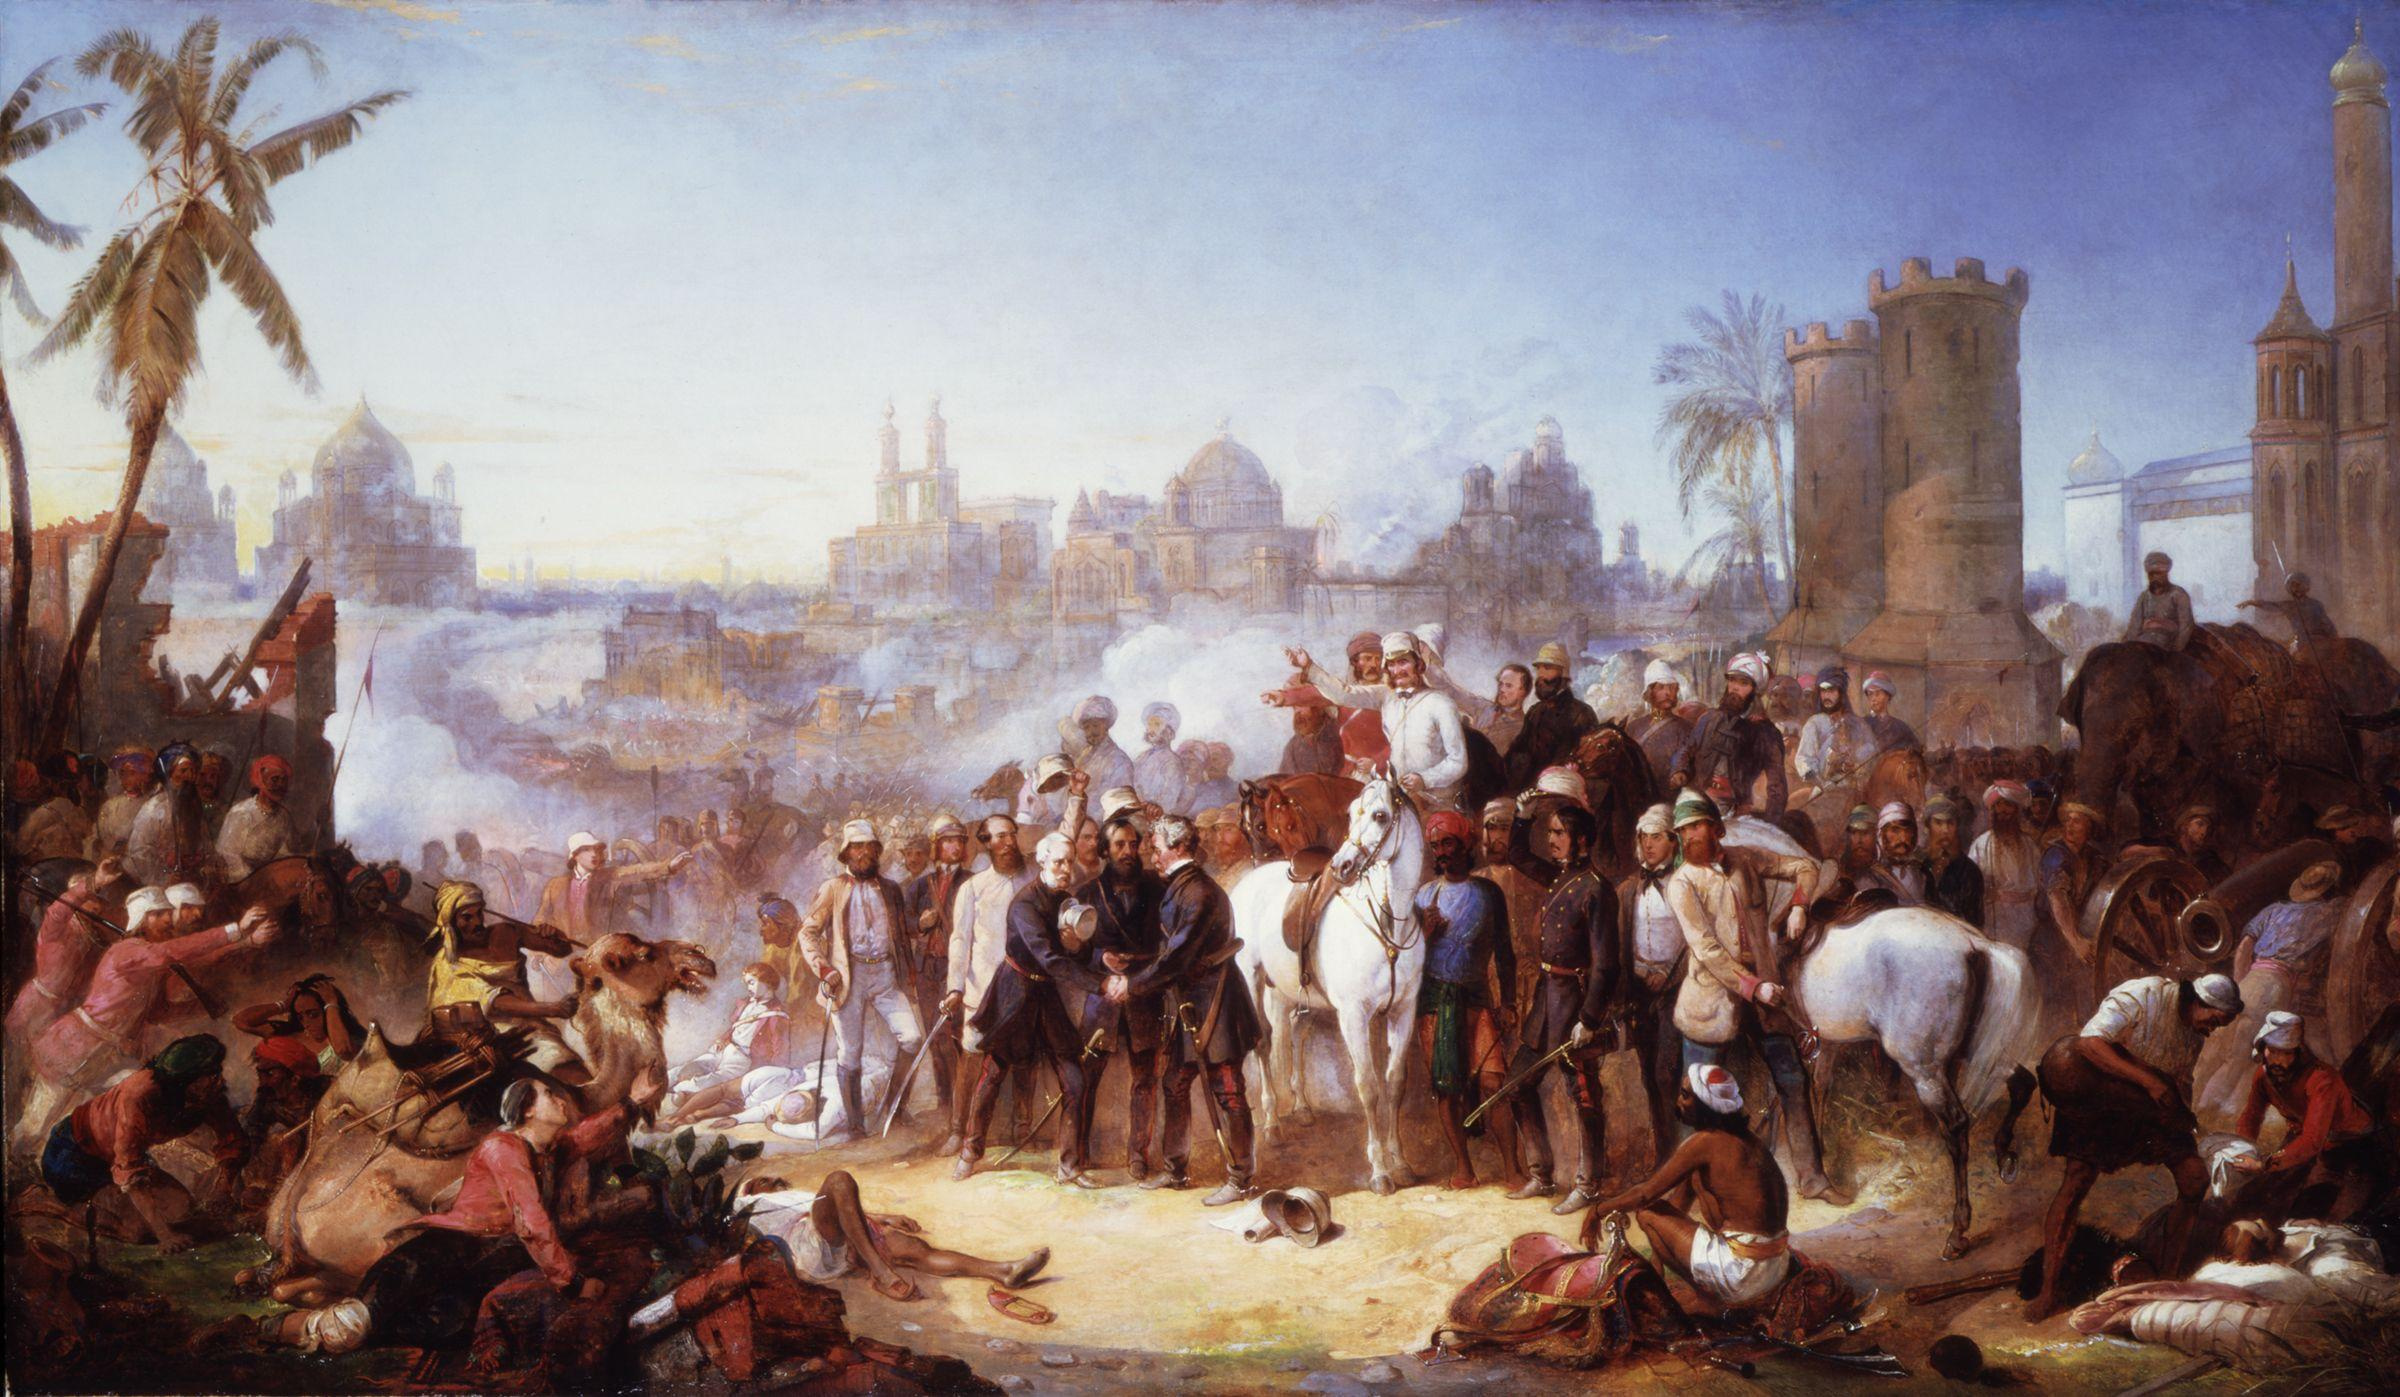 File:The Relief of Lucknow, 1857 by Thomas Jones Barker.jpg - Wikimedia Commons